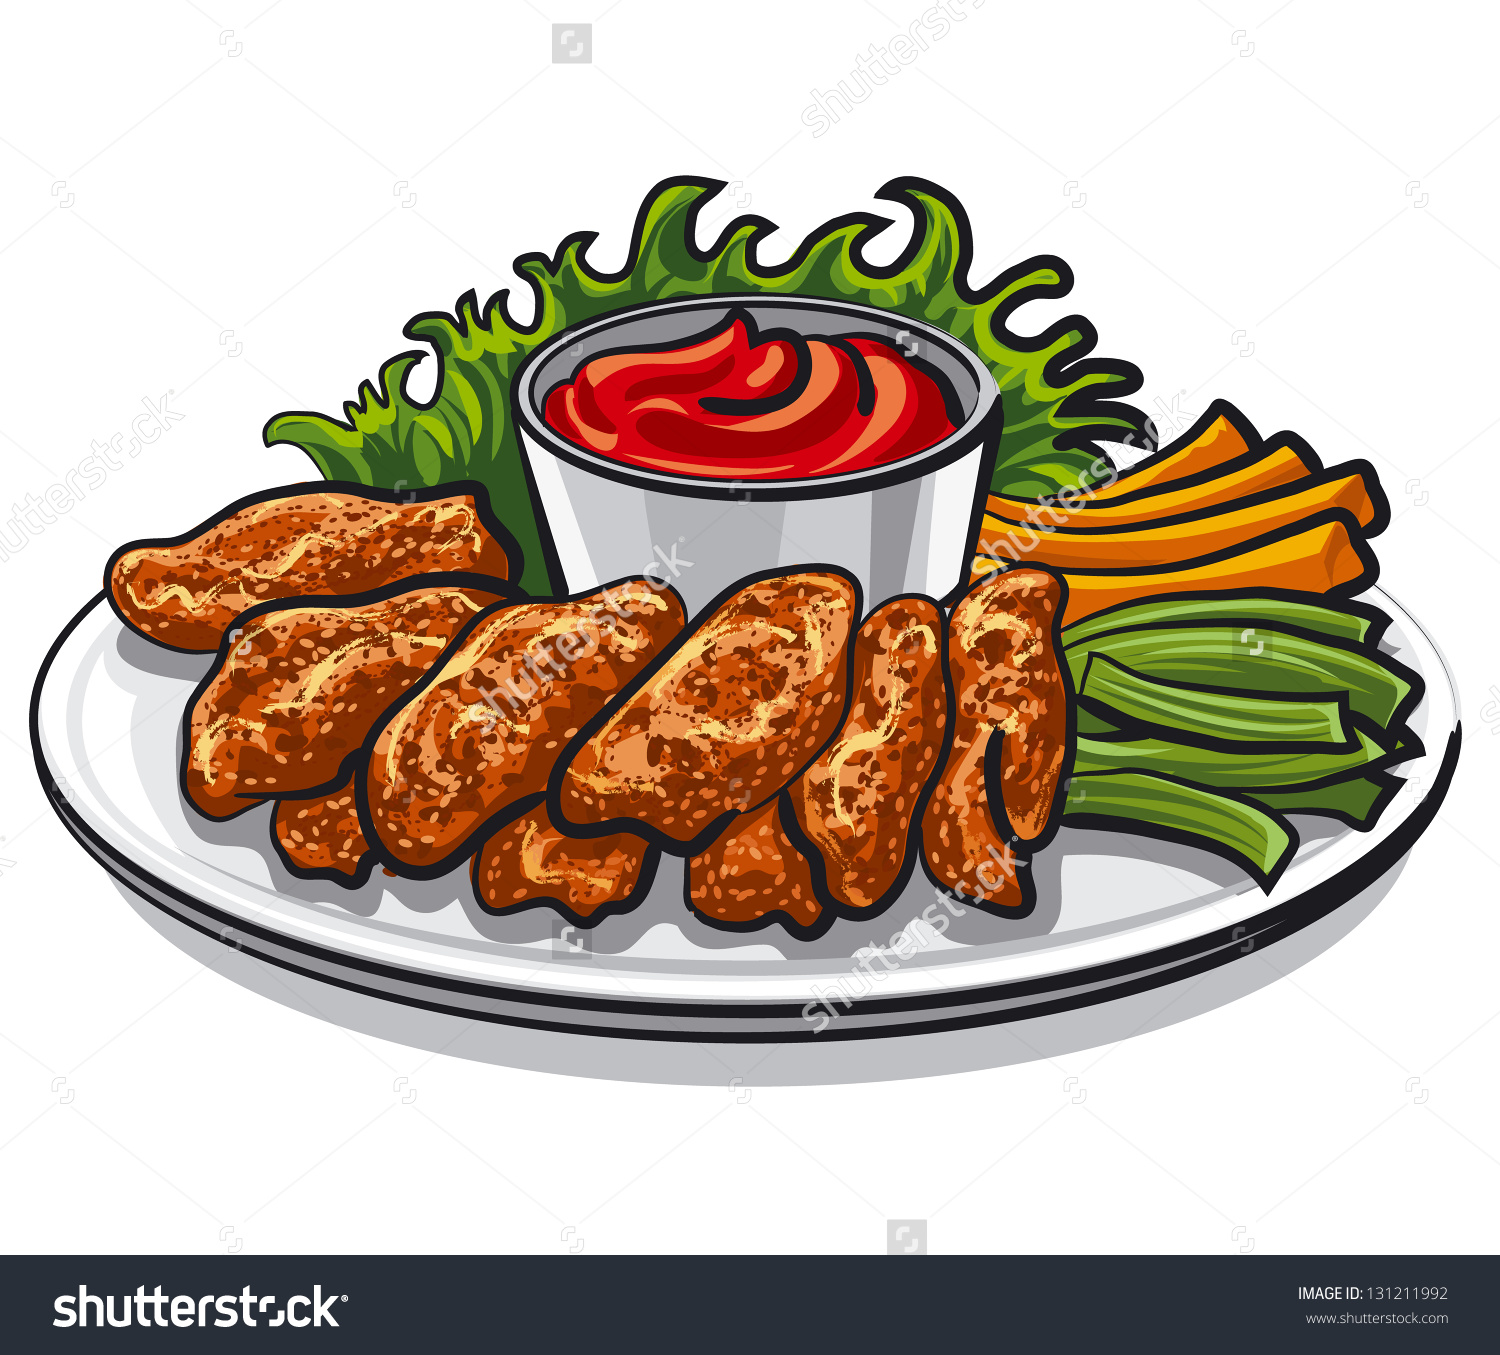 Chicken wings clip art.